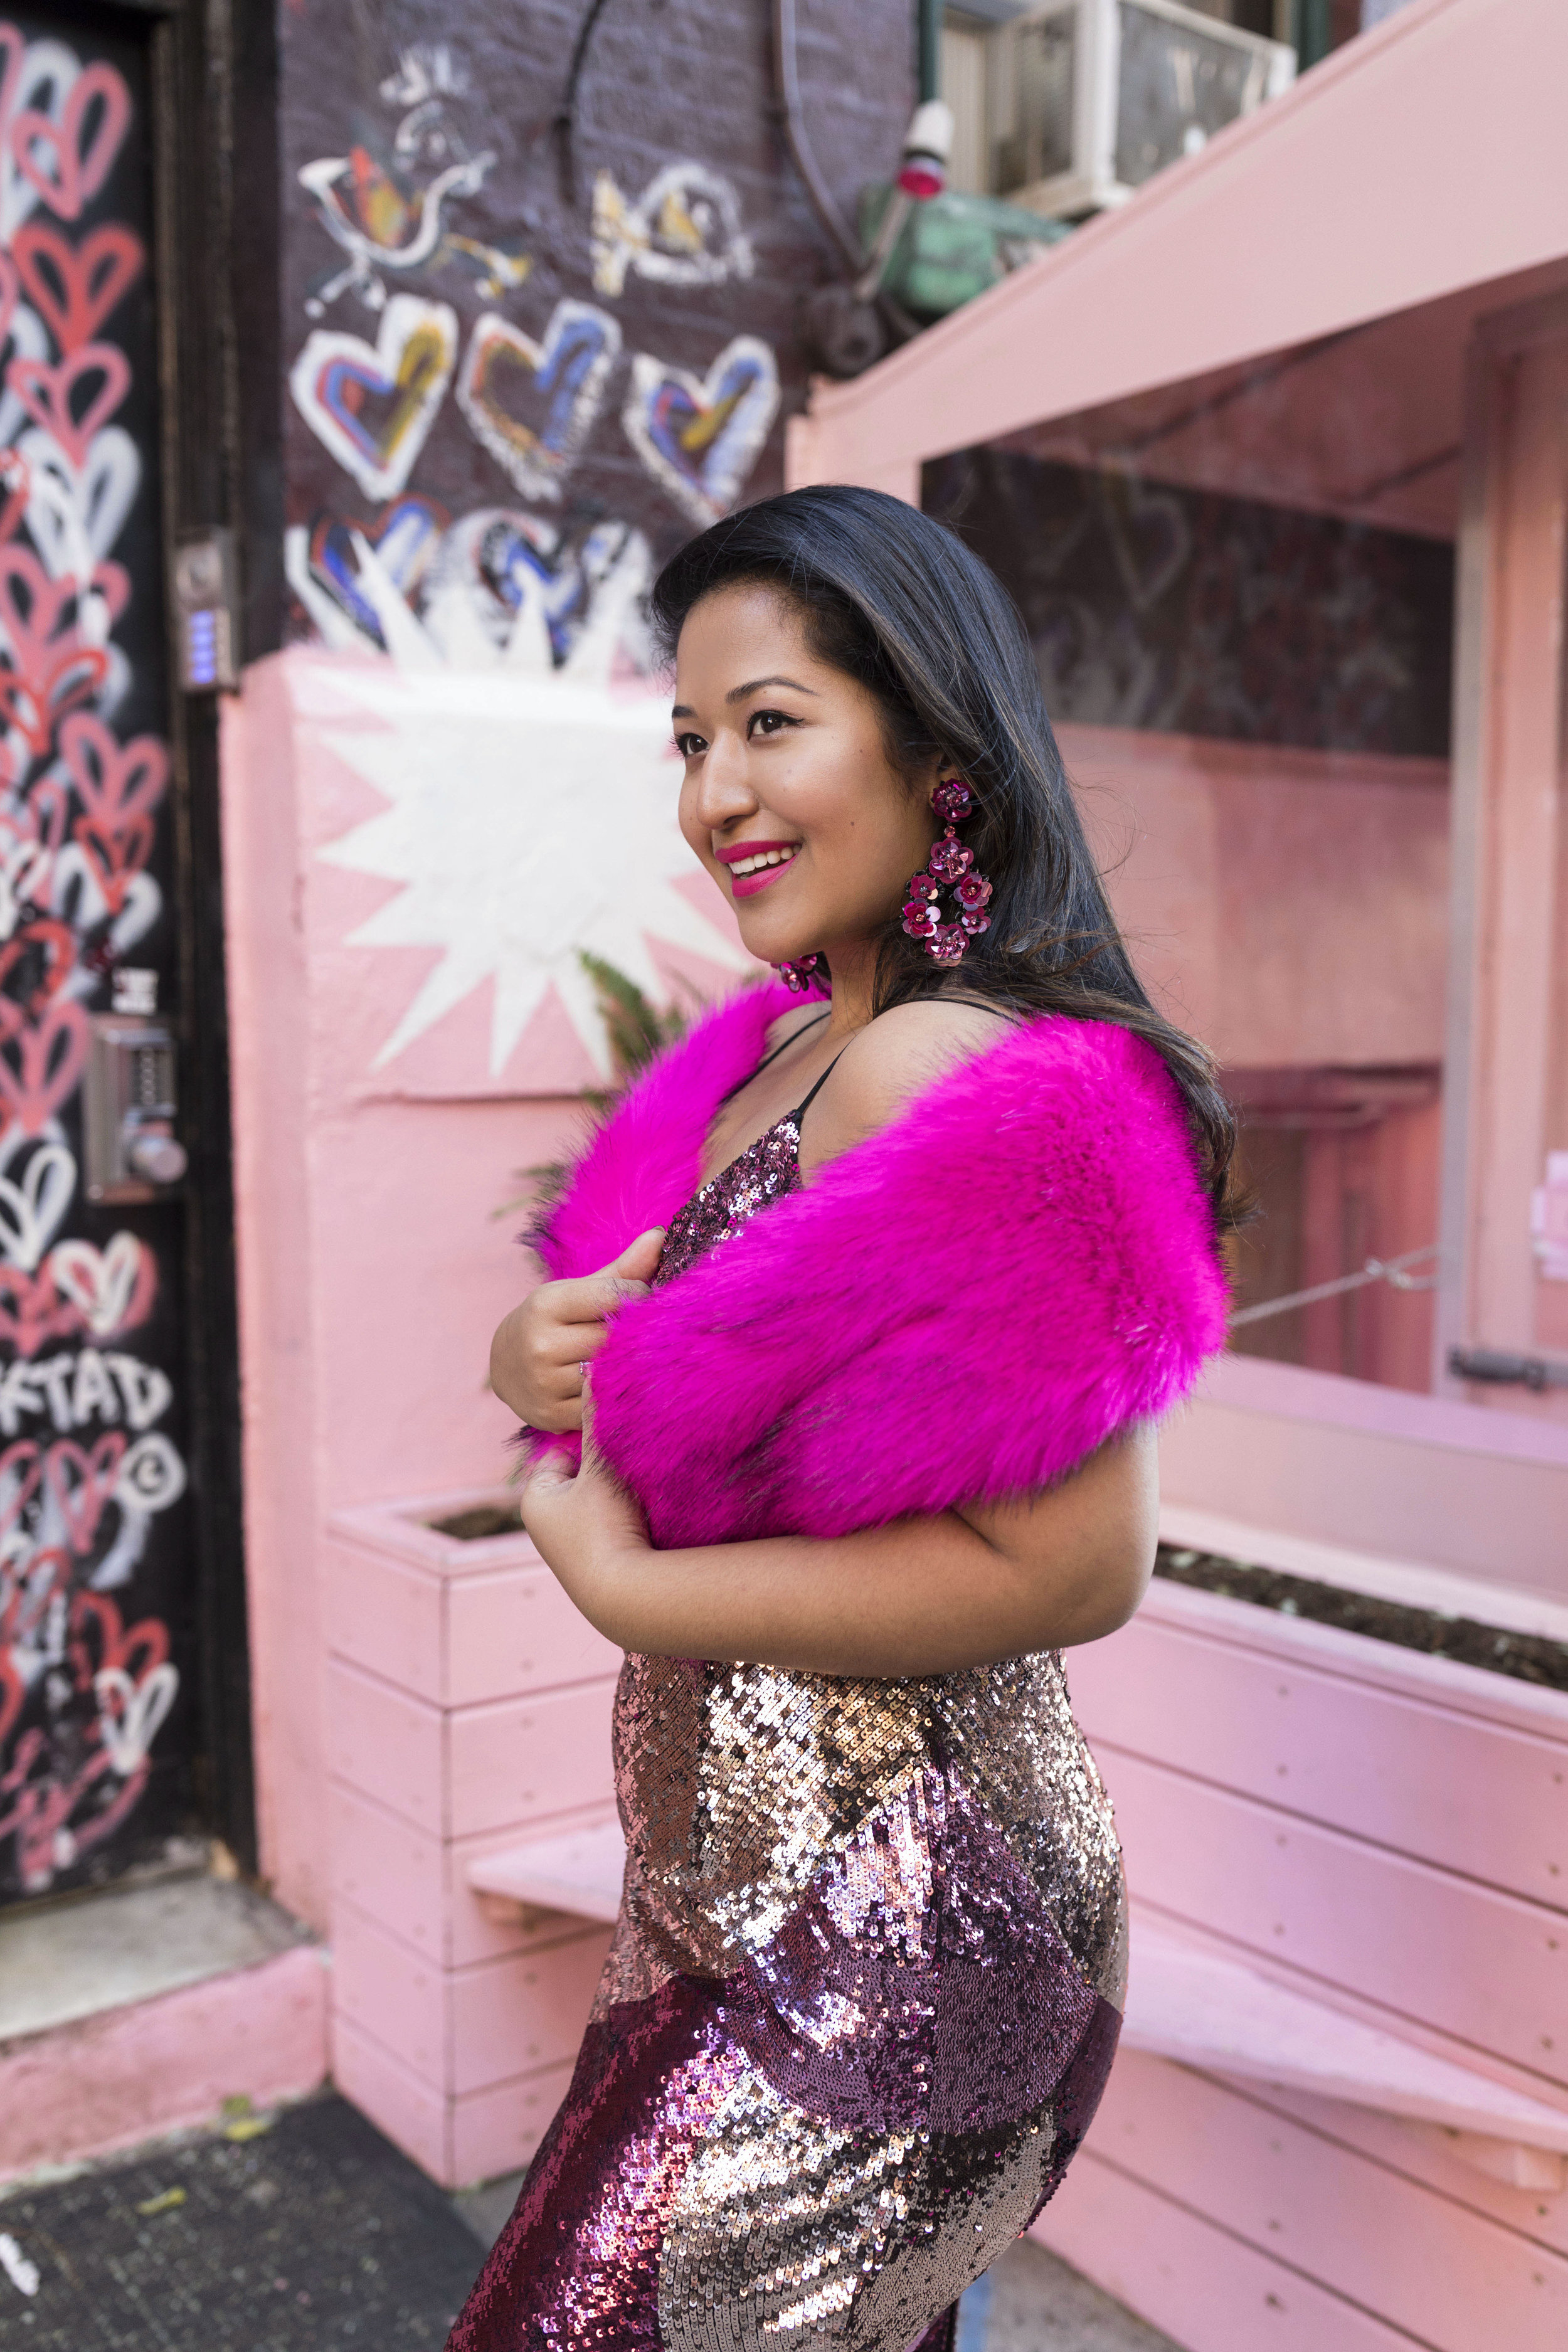 Krity S x New Years Eve Outfit x Aidan Mattox Color Block Pink Sequin Short Dress with Forever 21 Faux Fur Scarf 8.jpg